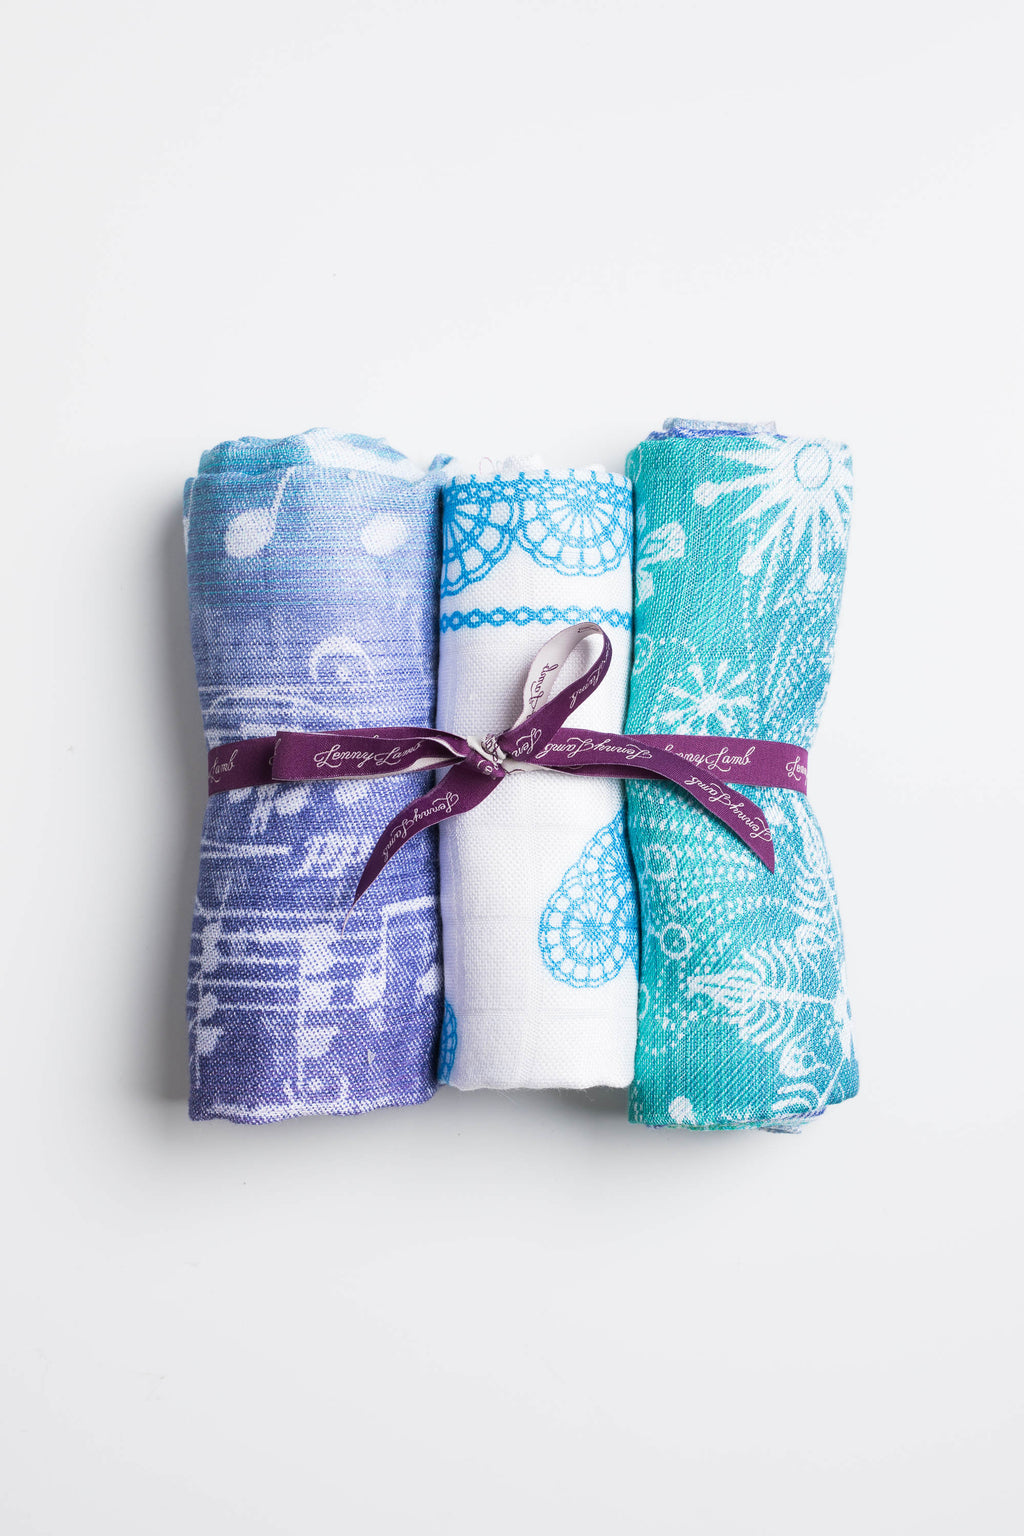 LennyLamb Muslin Square Set - Snow Queen Magic Lake, Symphony Aurora, Turquoise Lace